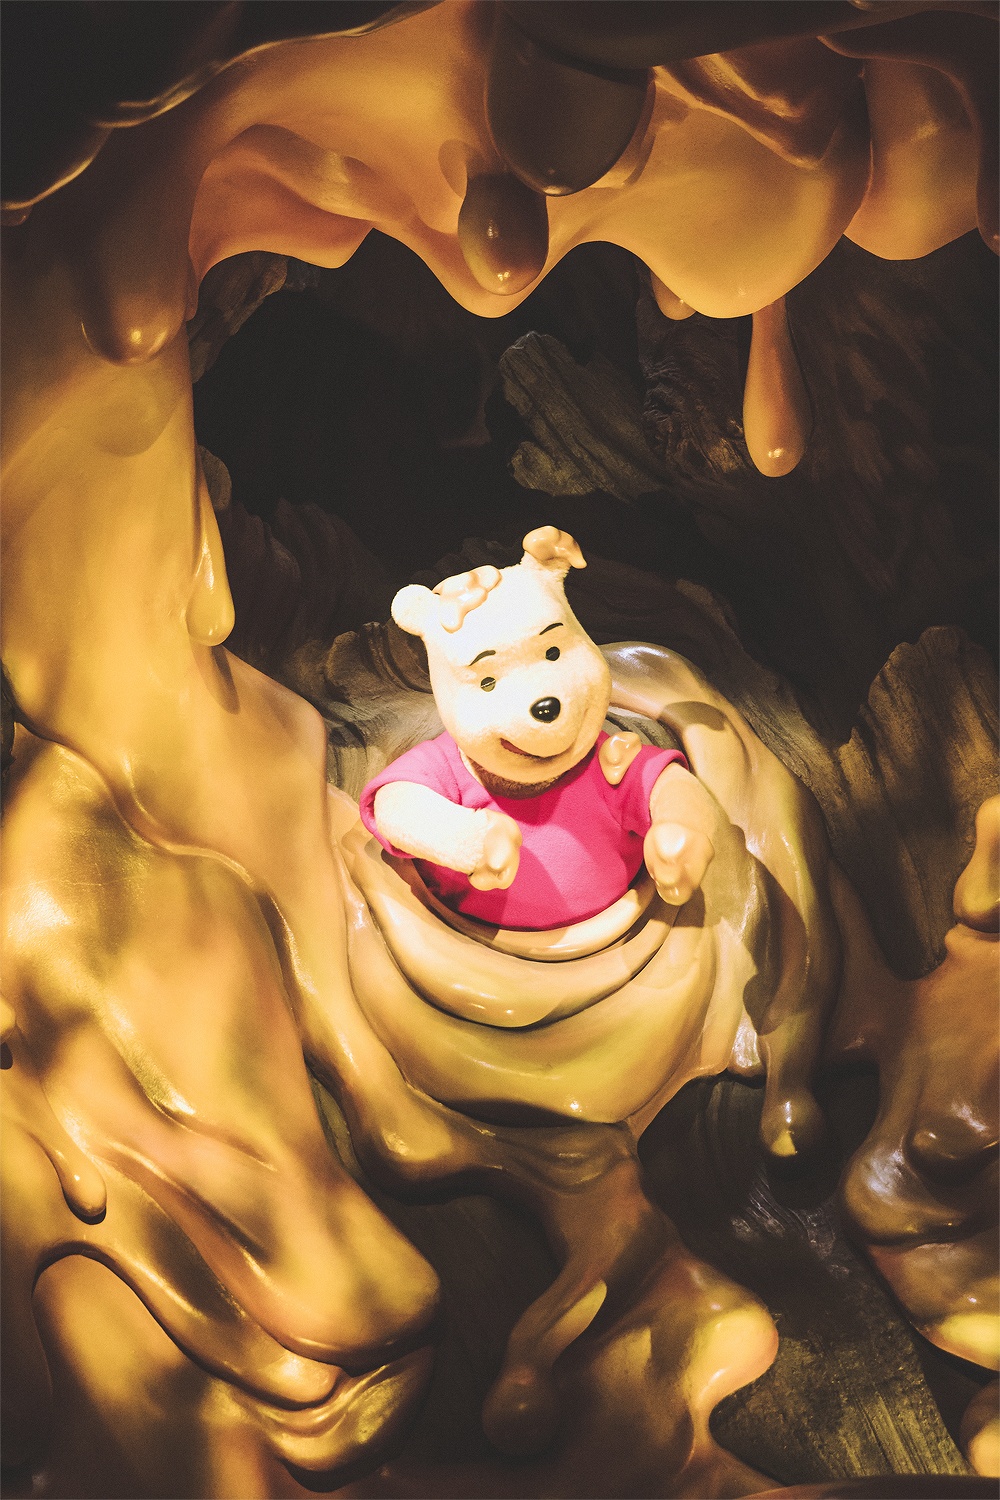 And in the end you are stuck with Pooh-san in the honey tree, which literally smells like honey!